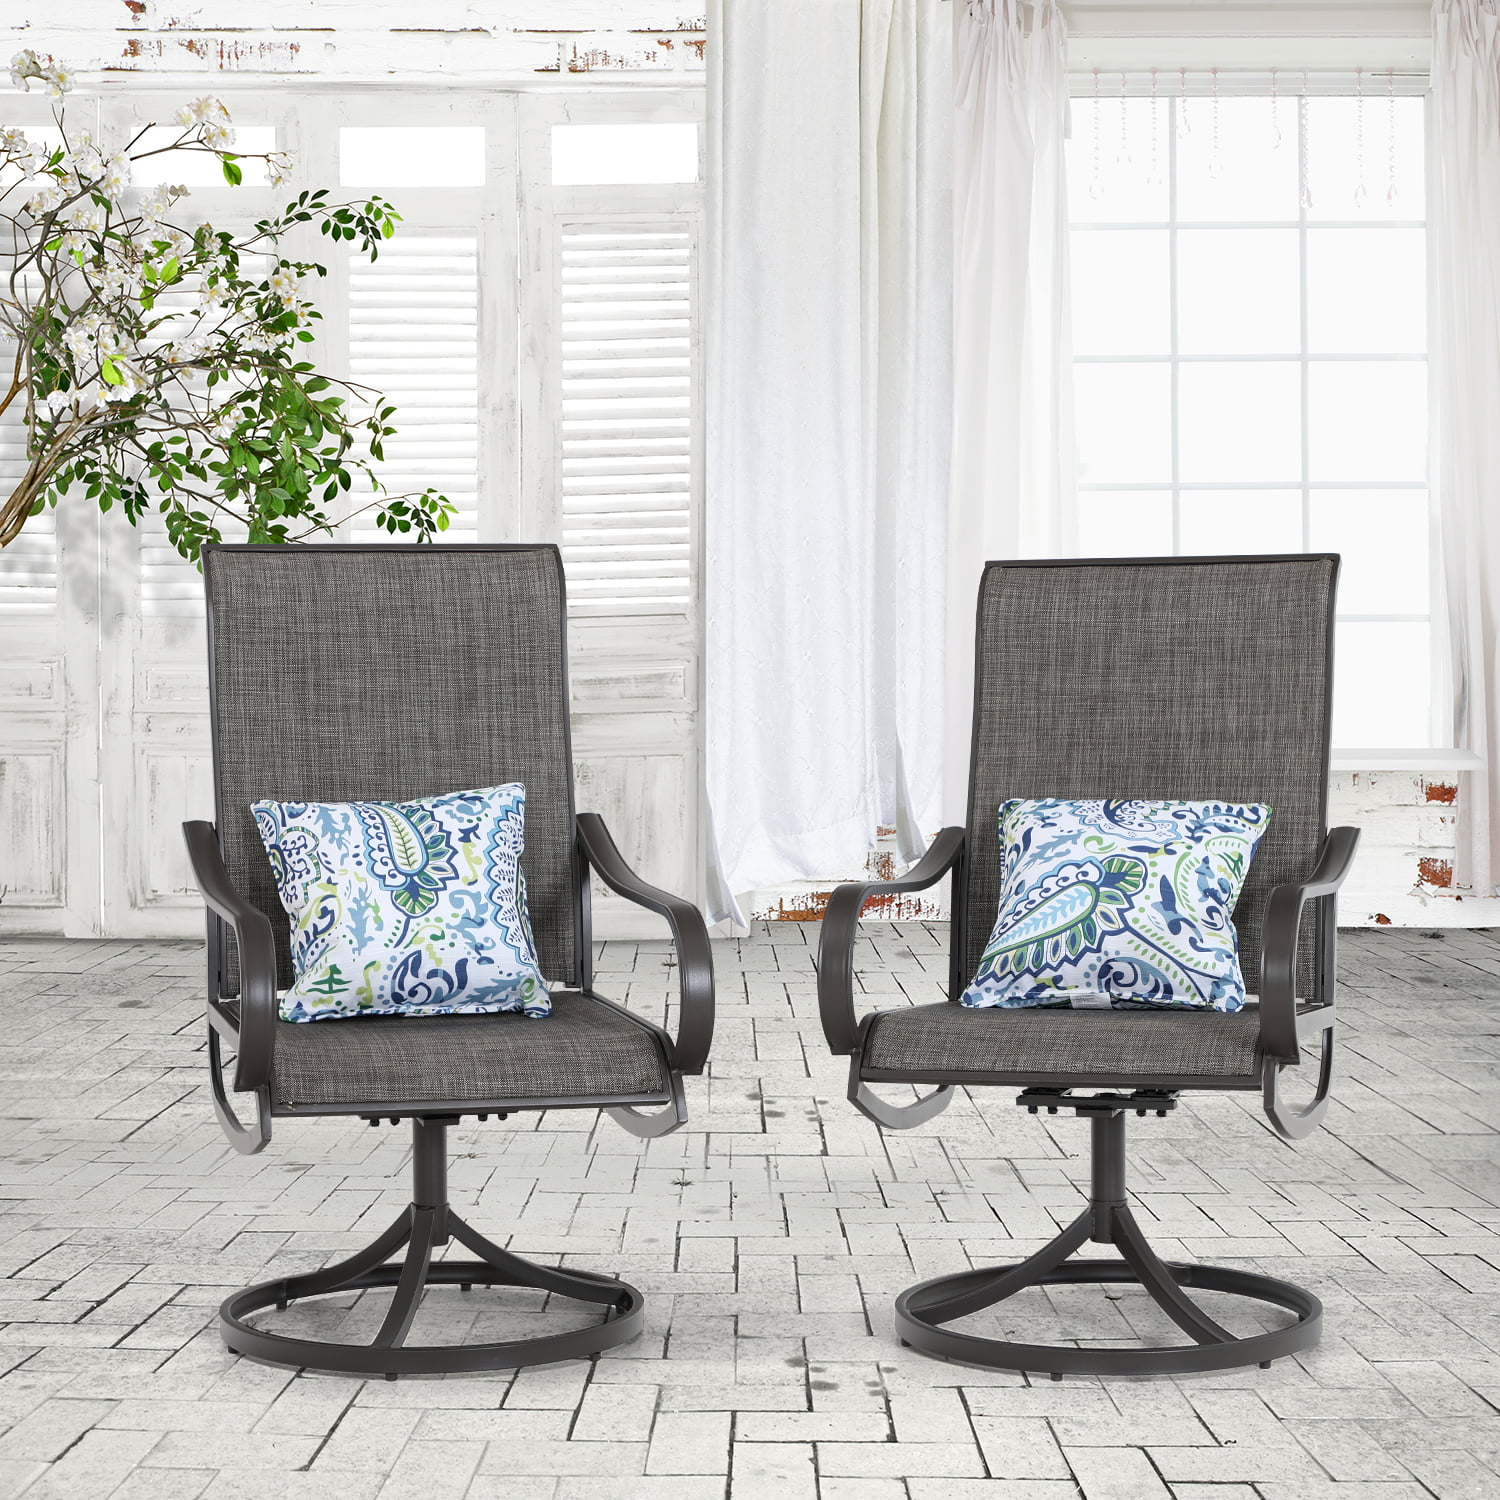 mfstudio 2 pieces patio dining chairs swivel metal chairs all weather resistant outdoor furniture sling mesh brown steel frame walmart com